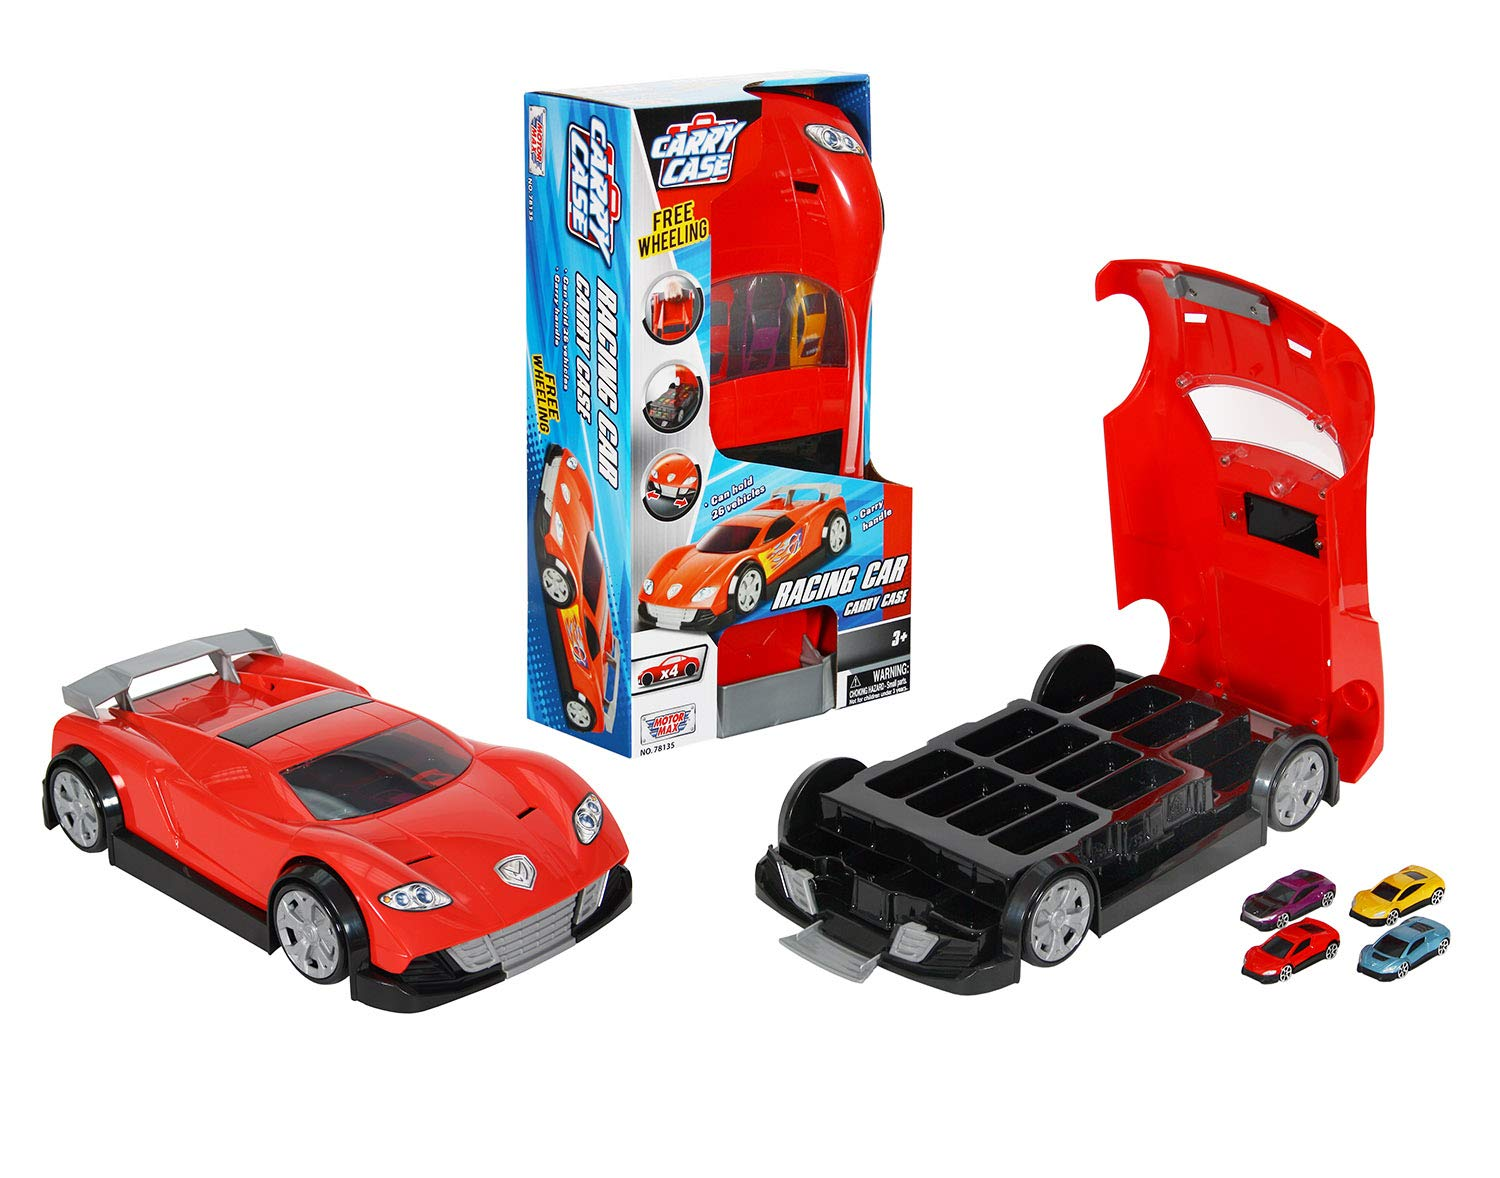 Trays are Included Ages 3+ New Motor Max Racing Car Carry Case with Carry Handle Contains 4 Cars Can Carry 26 Cars